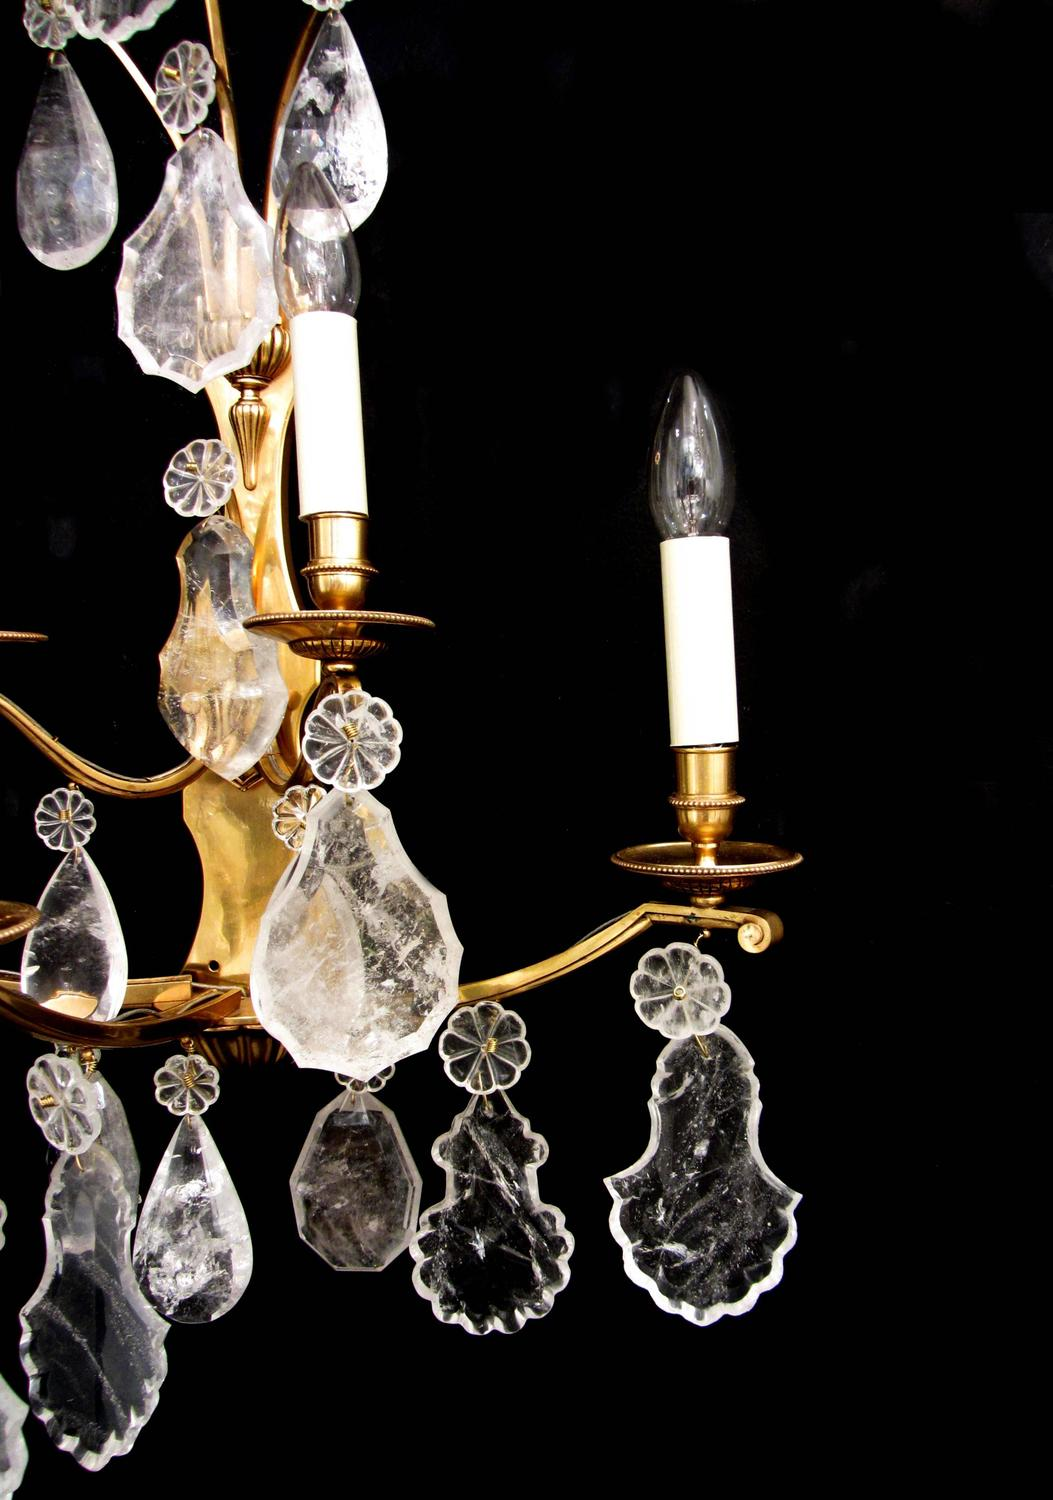 Pair of Rock Crystal Wall Lights For Sale at 1stdibs